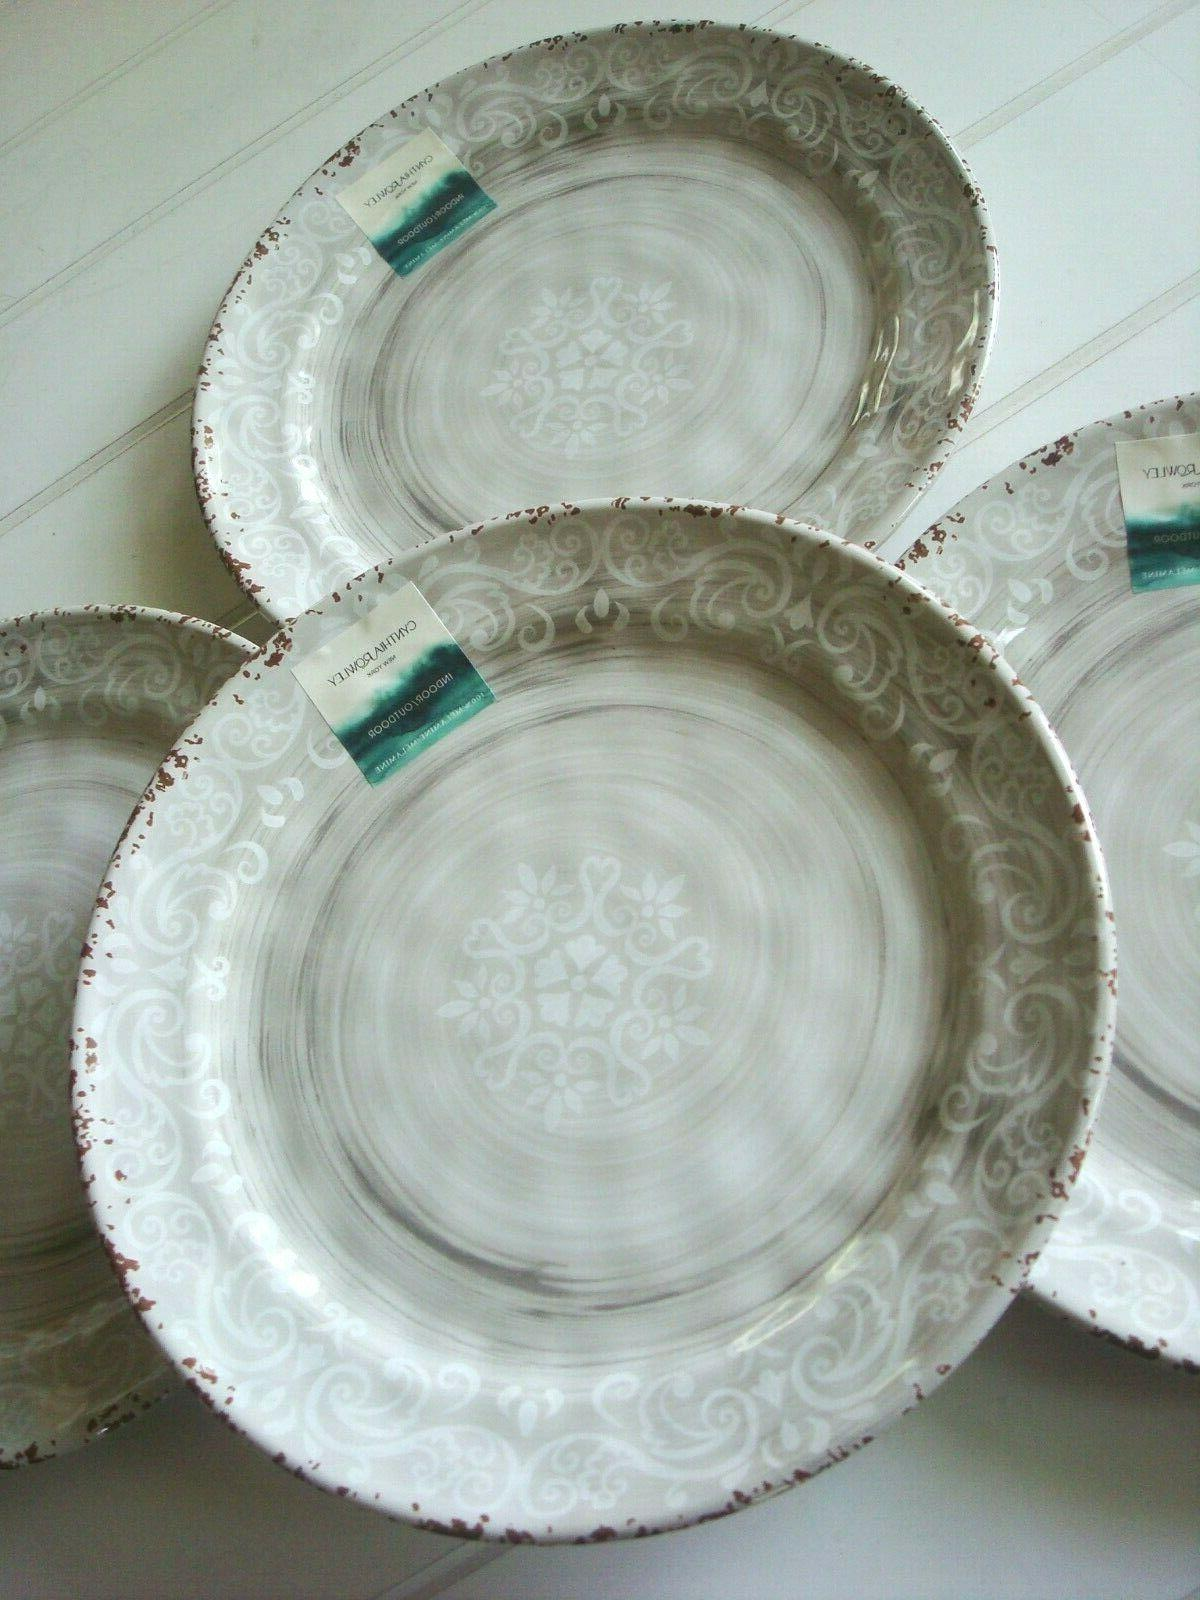 "Cynthia Gray Rustic 11"" Dinner Plates Set of 4"